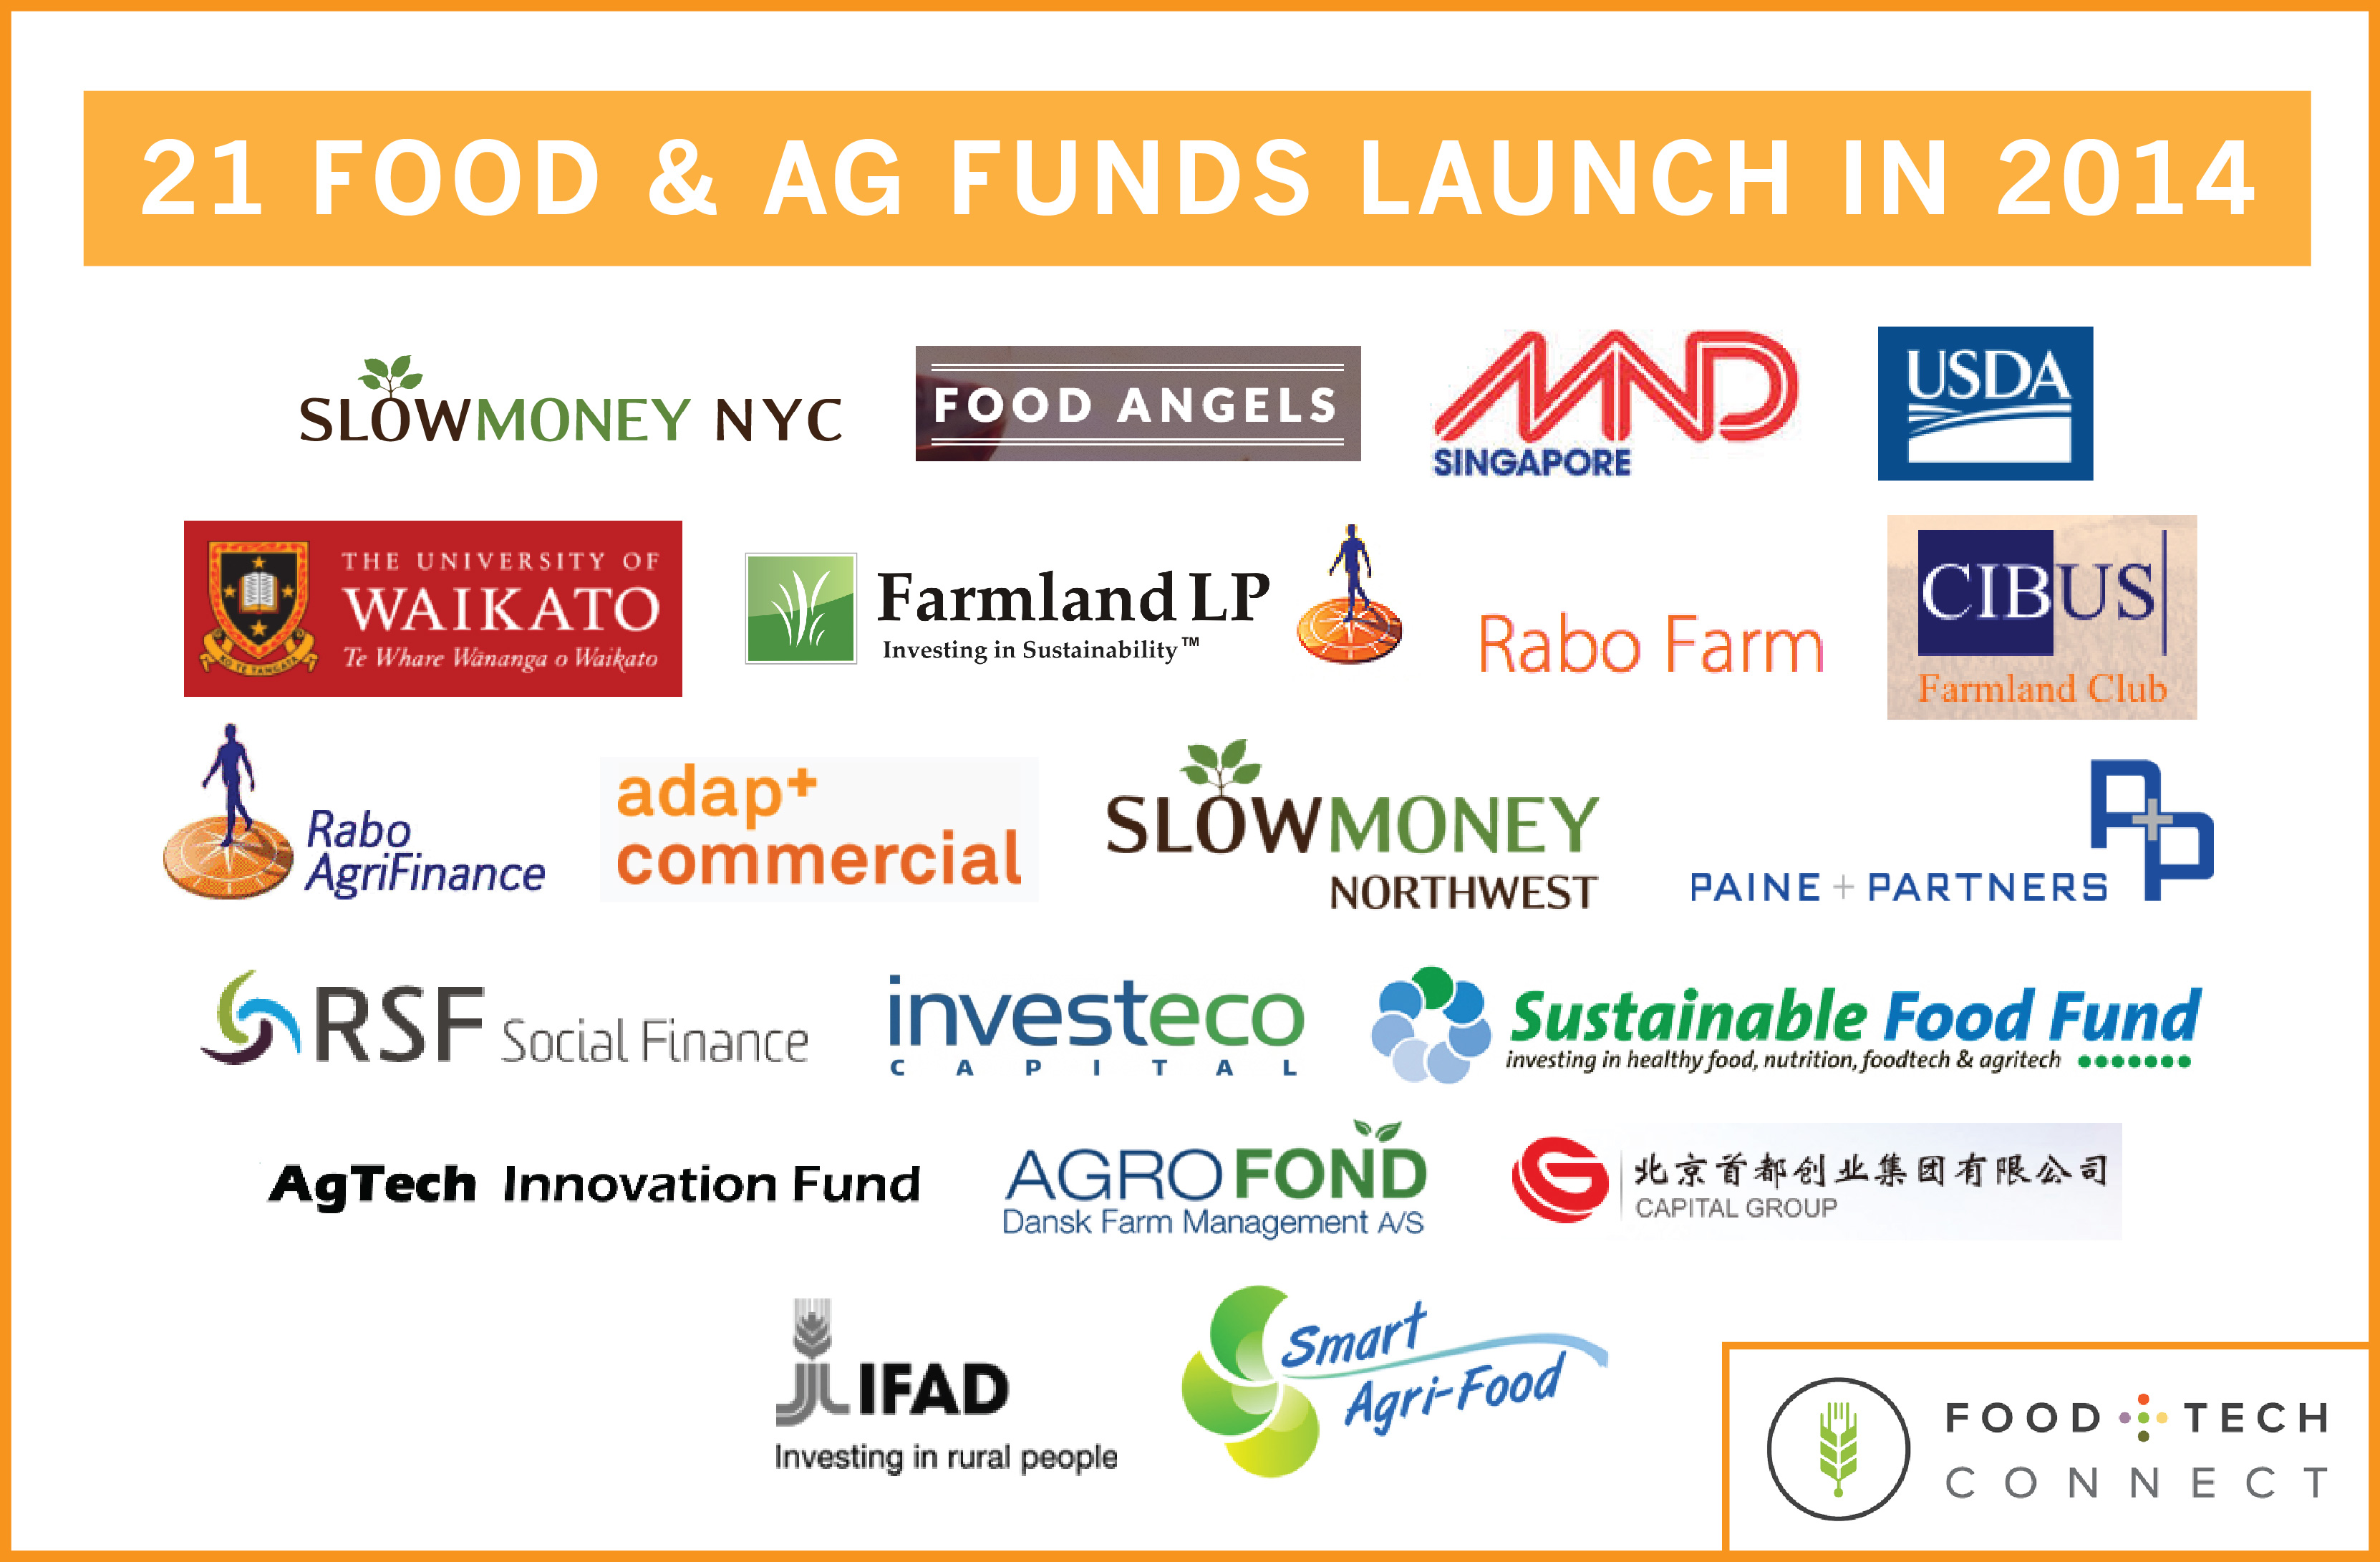 Food & Agriculture Funds